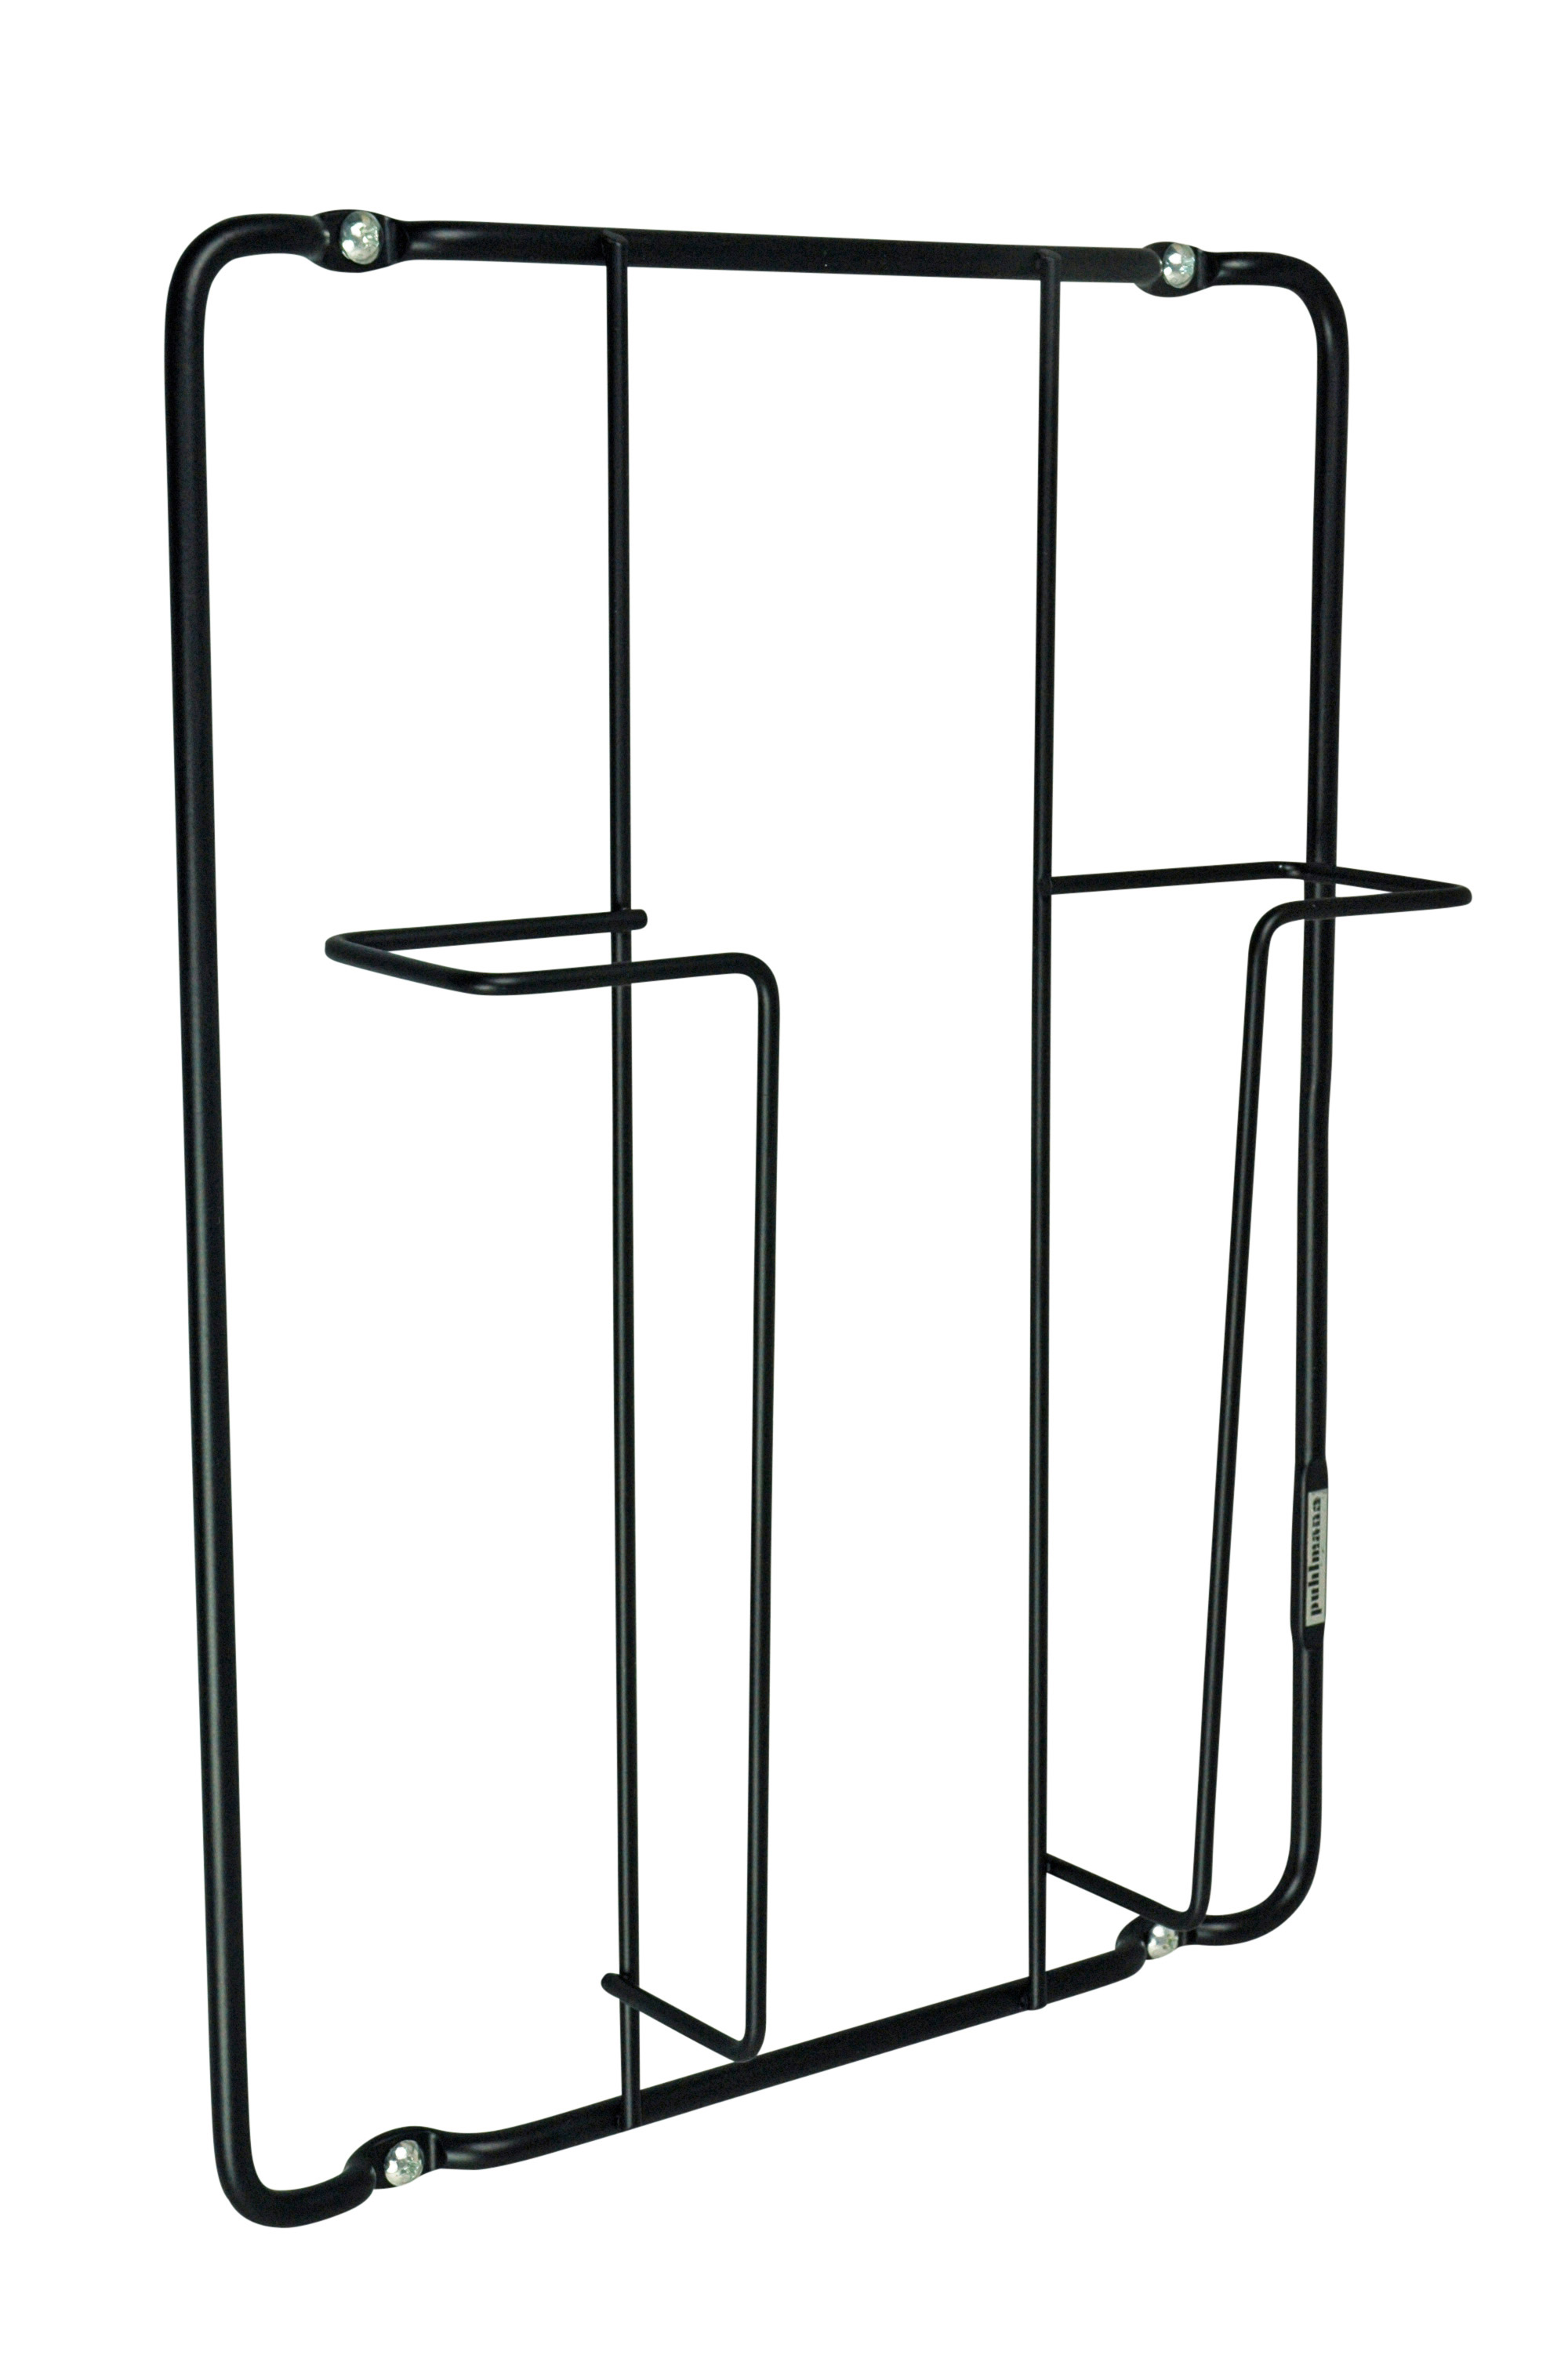 FRAME-1 magazine wallrack Black